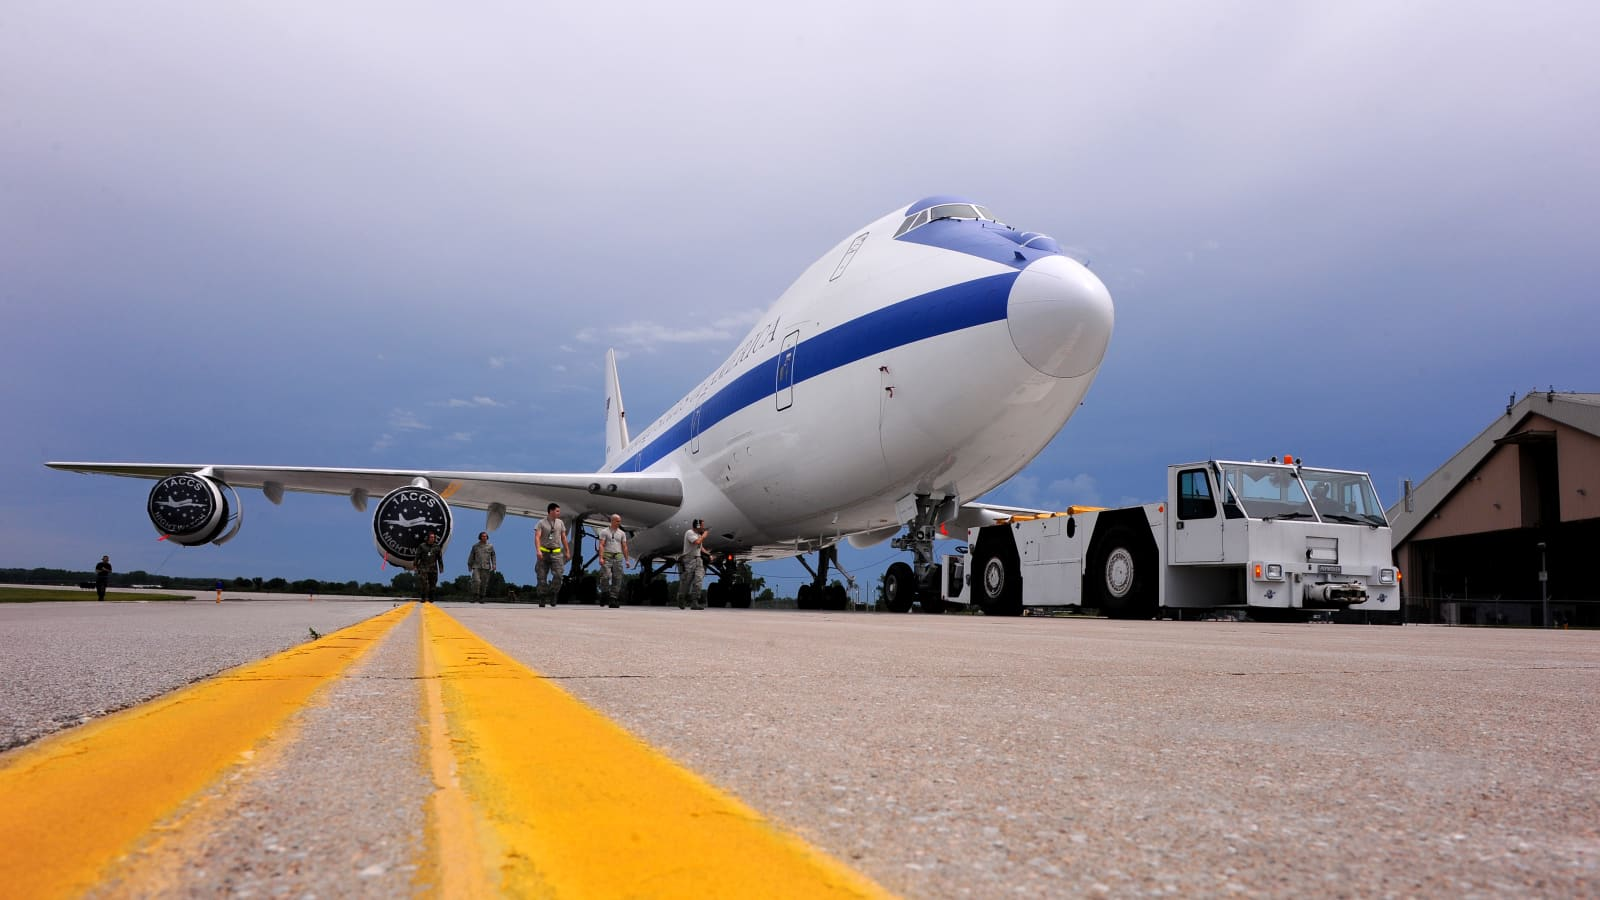 Us Military Doomsday Plane Can Withstand Aftermath Of Nuclear Blast